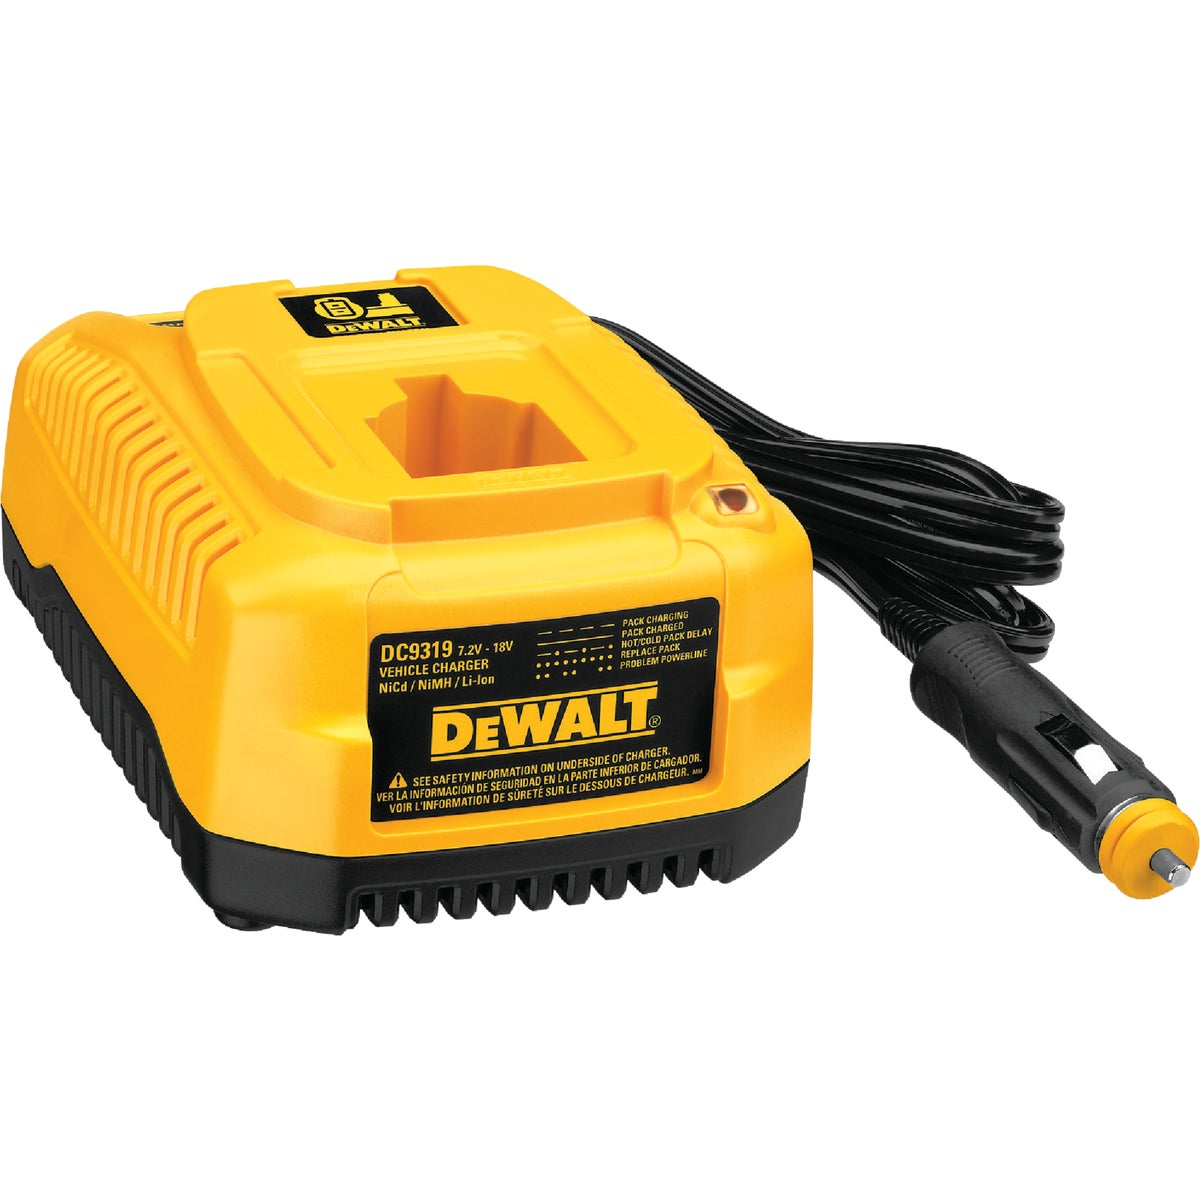 VEHICLE BATTERY CHARGER - DC9319 by DeWalt